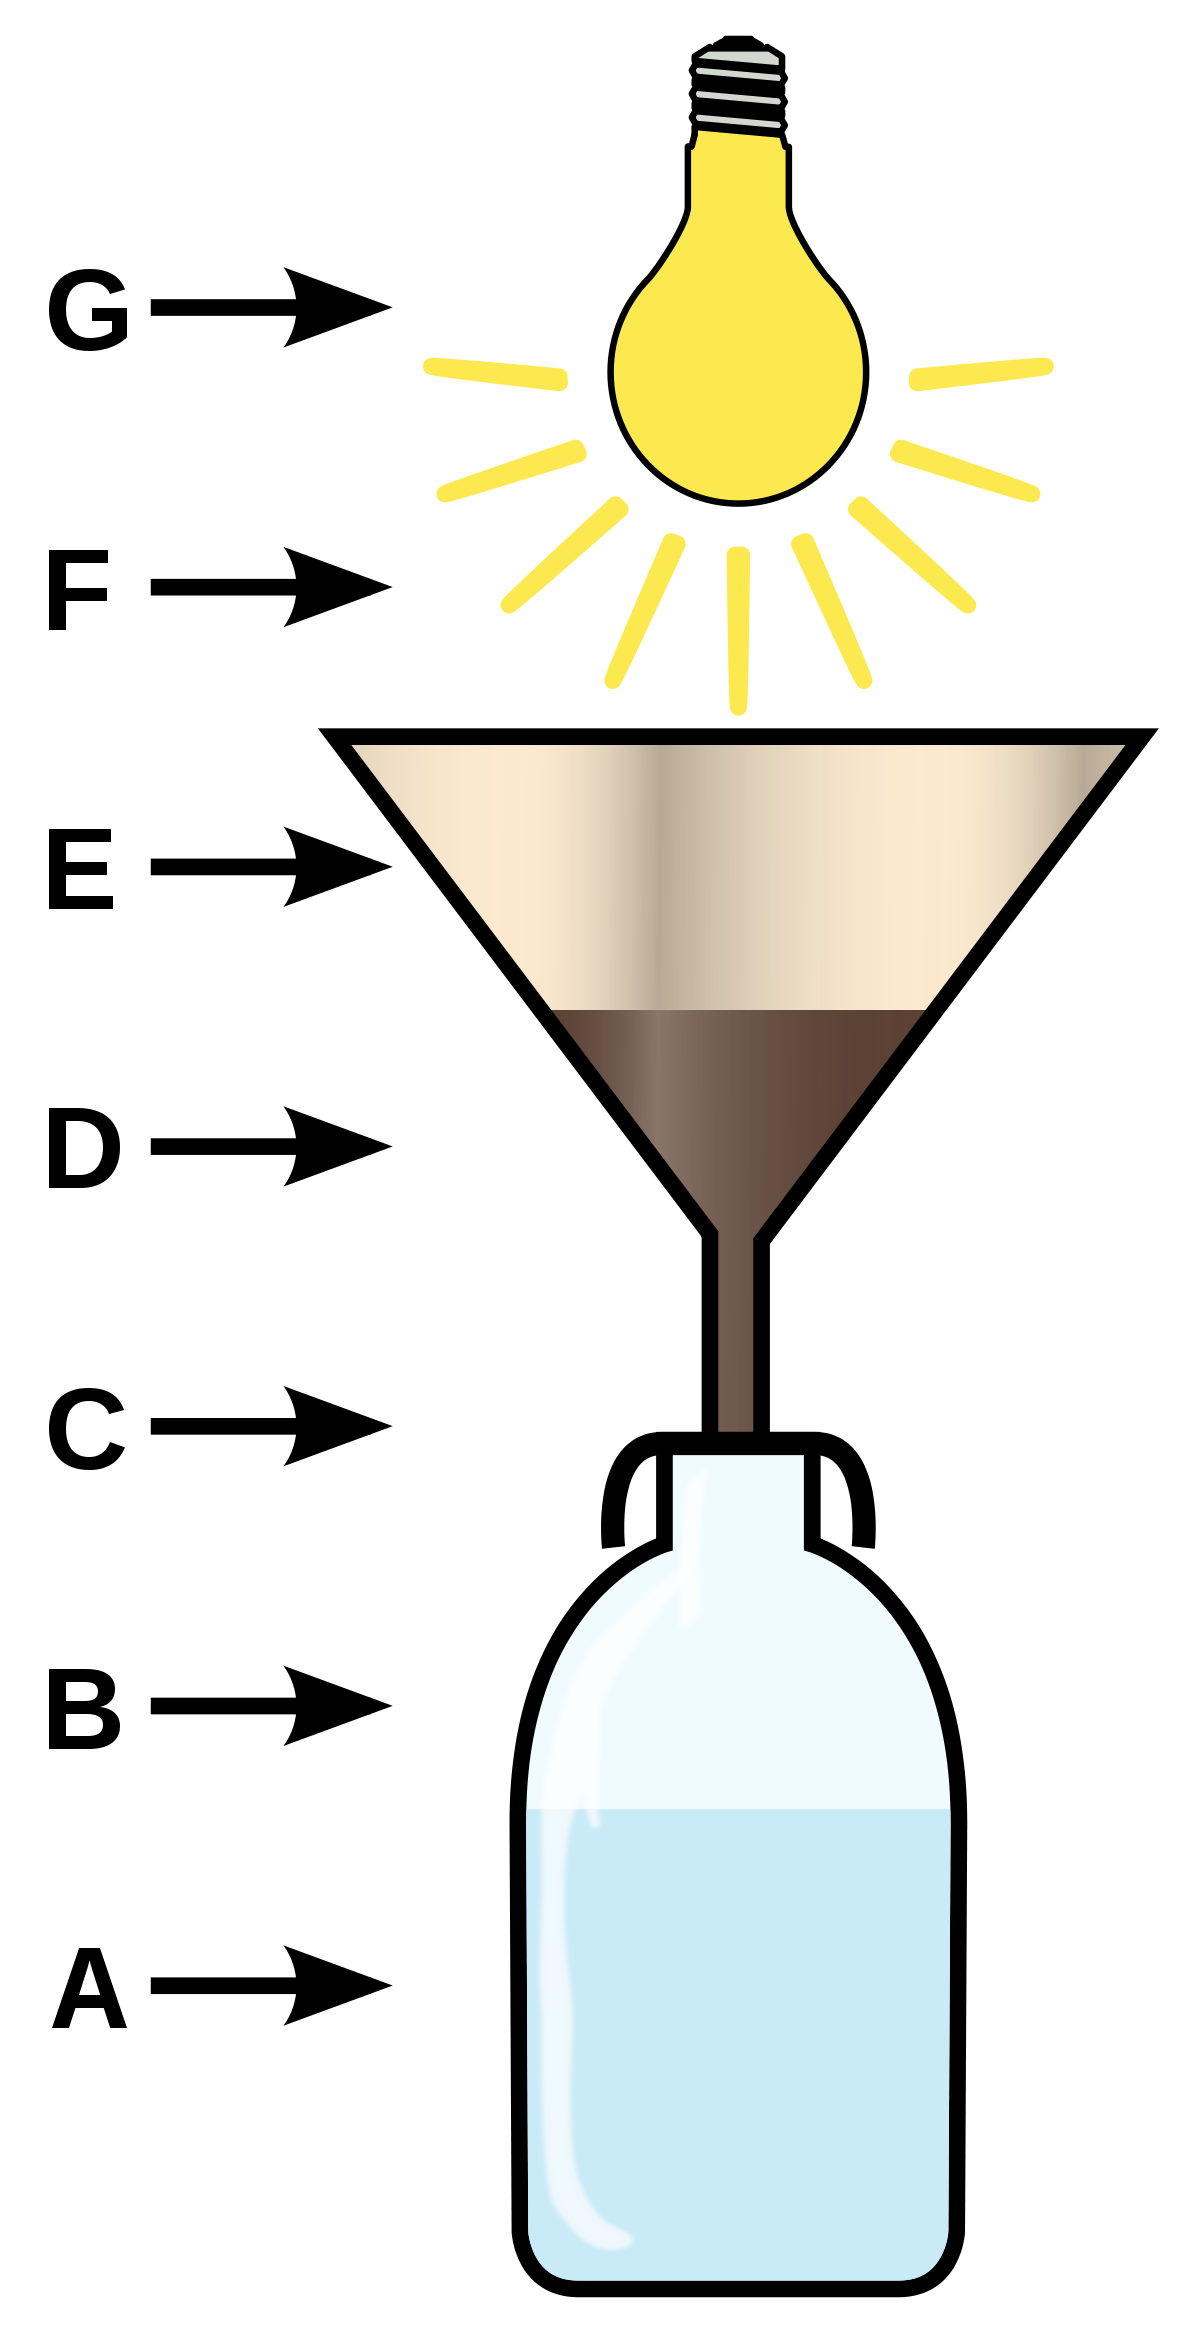 Tullgren funnel wikipedia . Creation clipart living thing